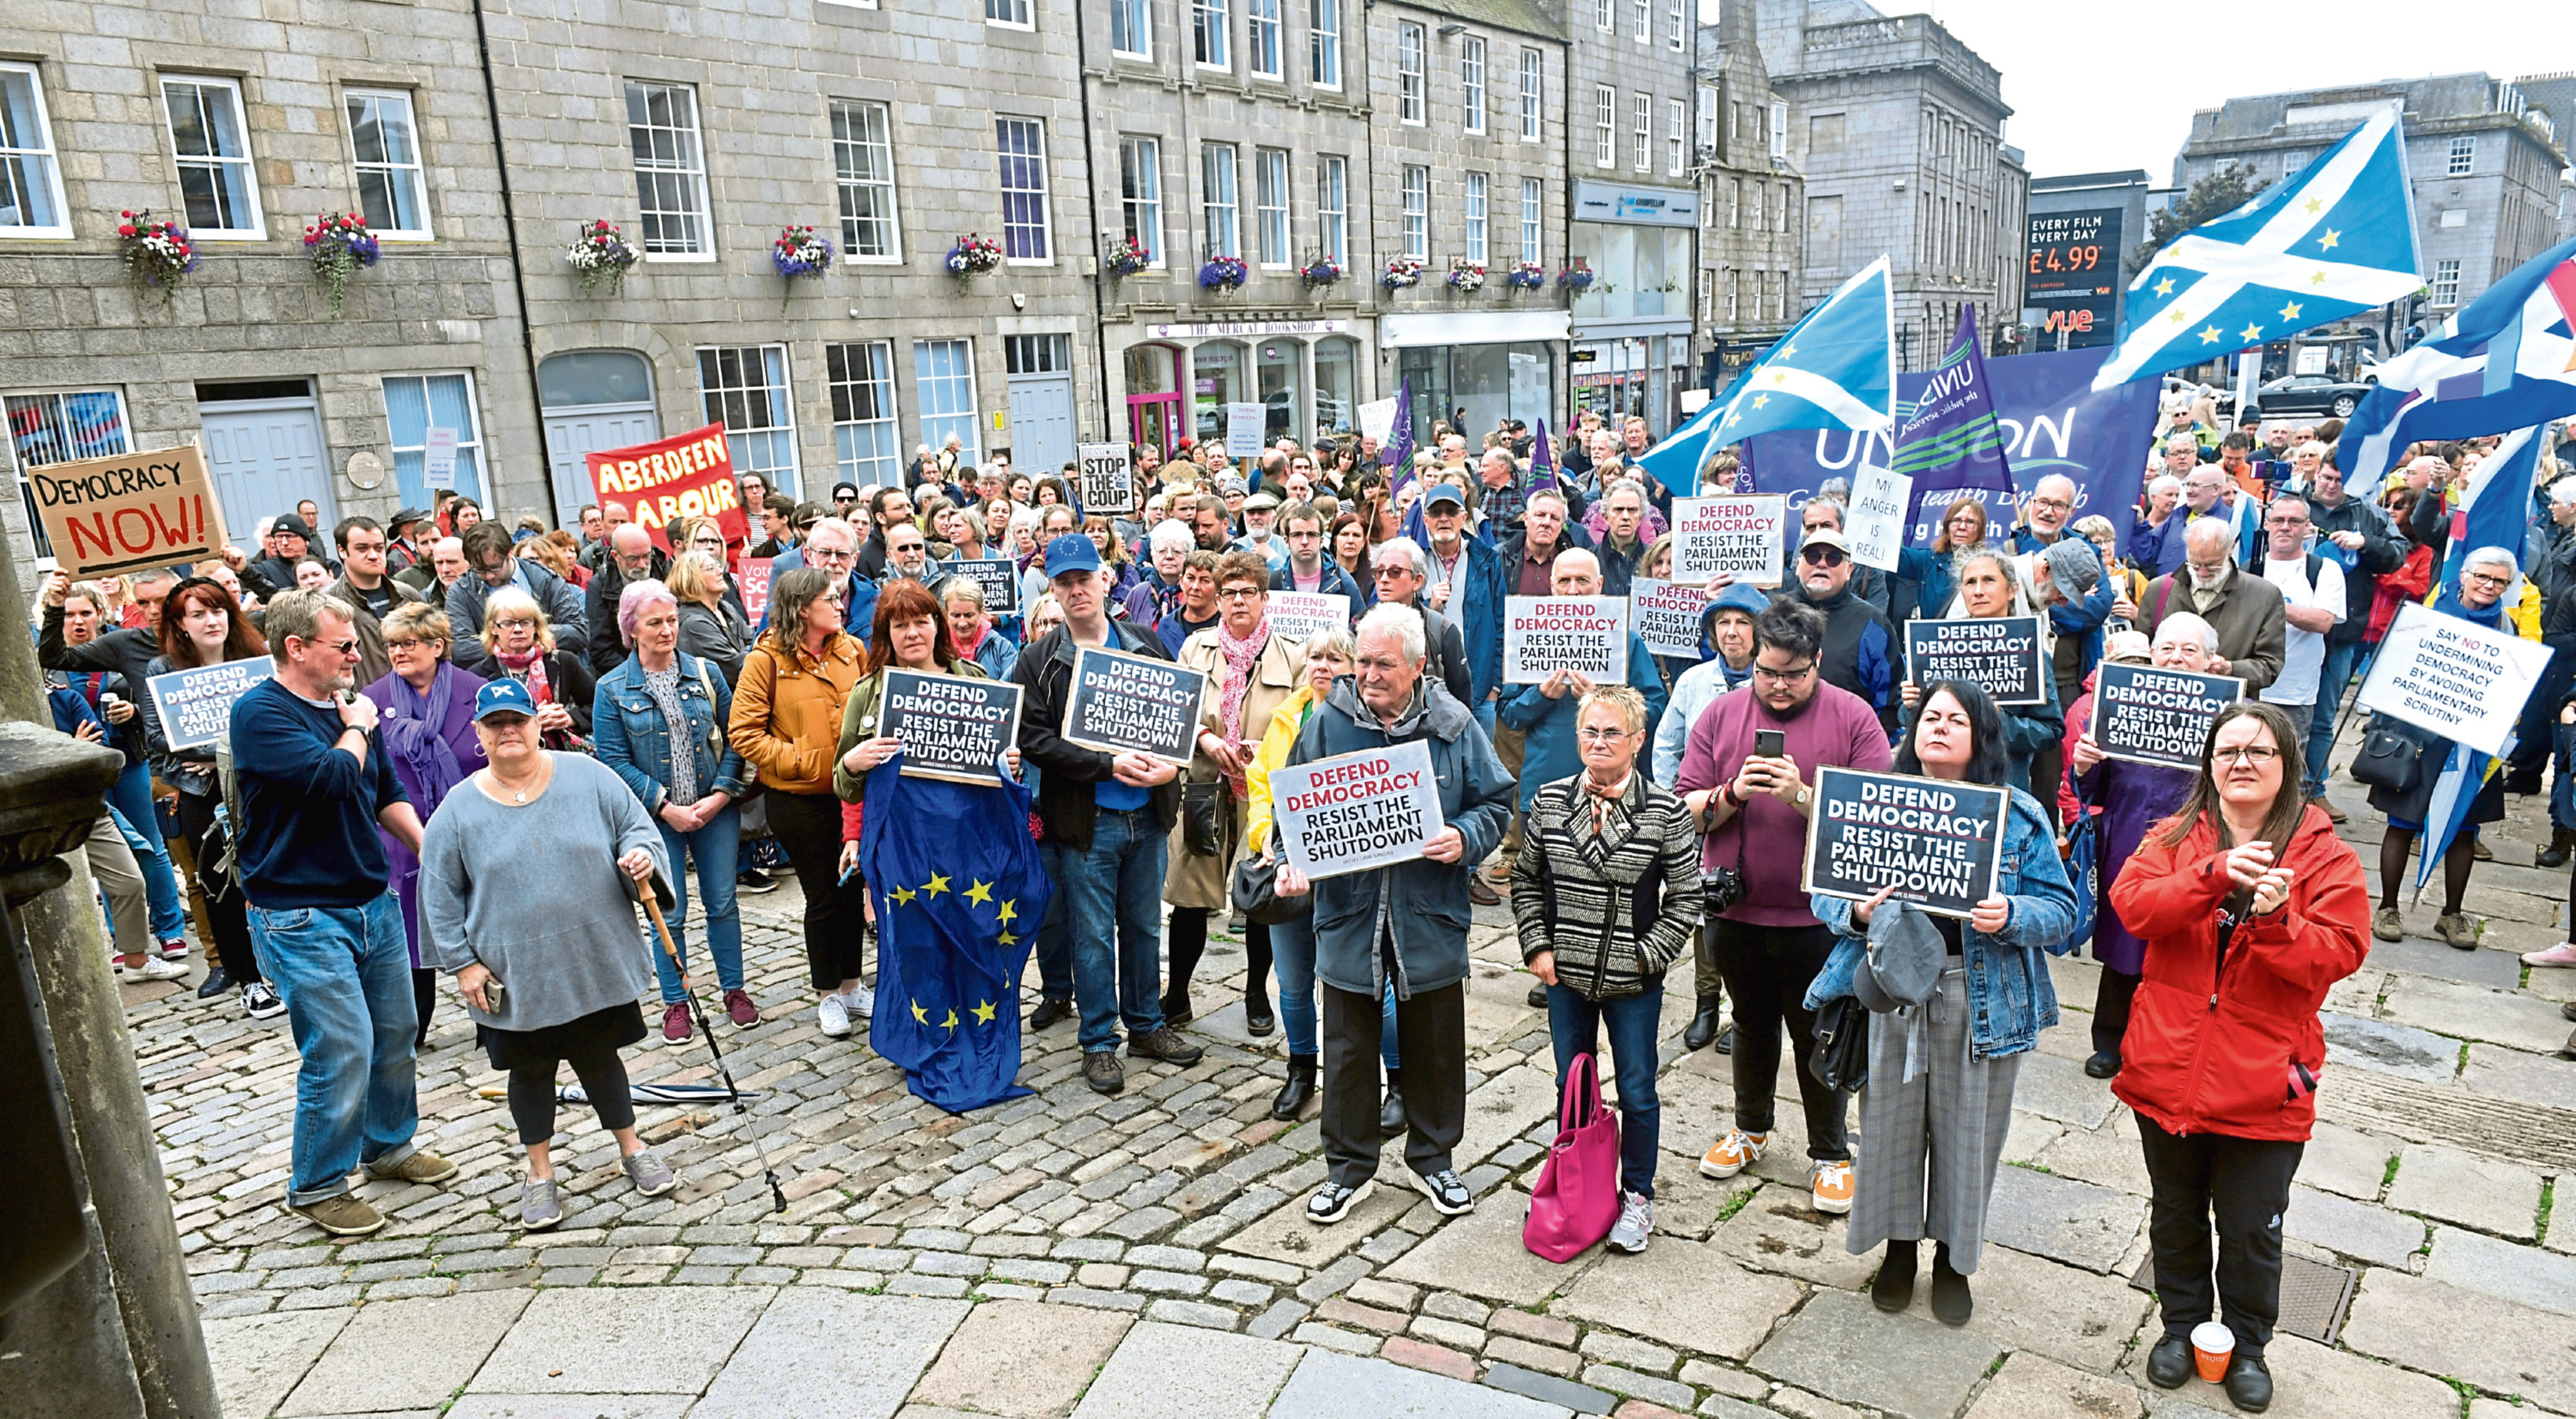 The protest was held at the Castlegate on Saturday. Picture by Chris Sumner